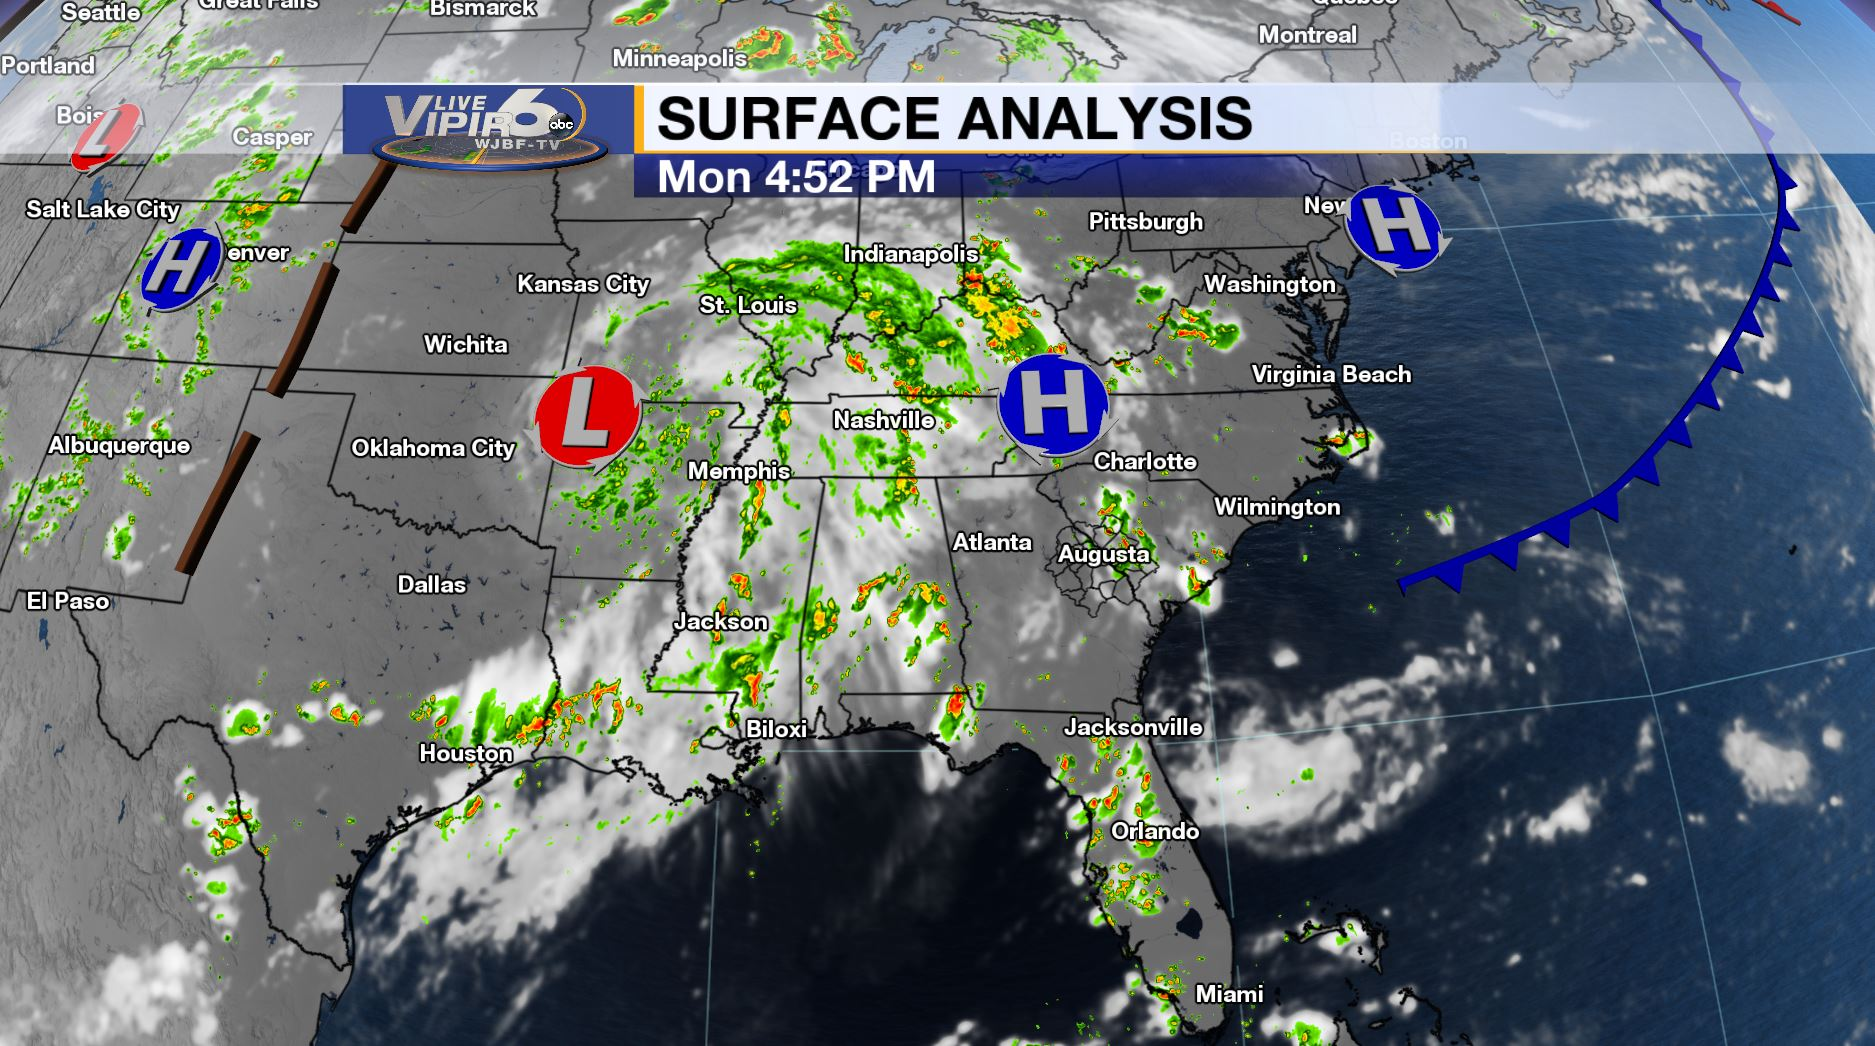 Live VIPIR 6 Weather Forecast 7/15/19 PM | WJBF